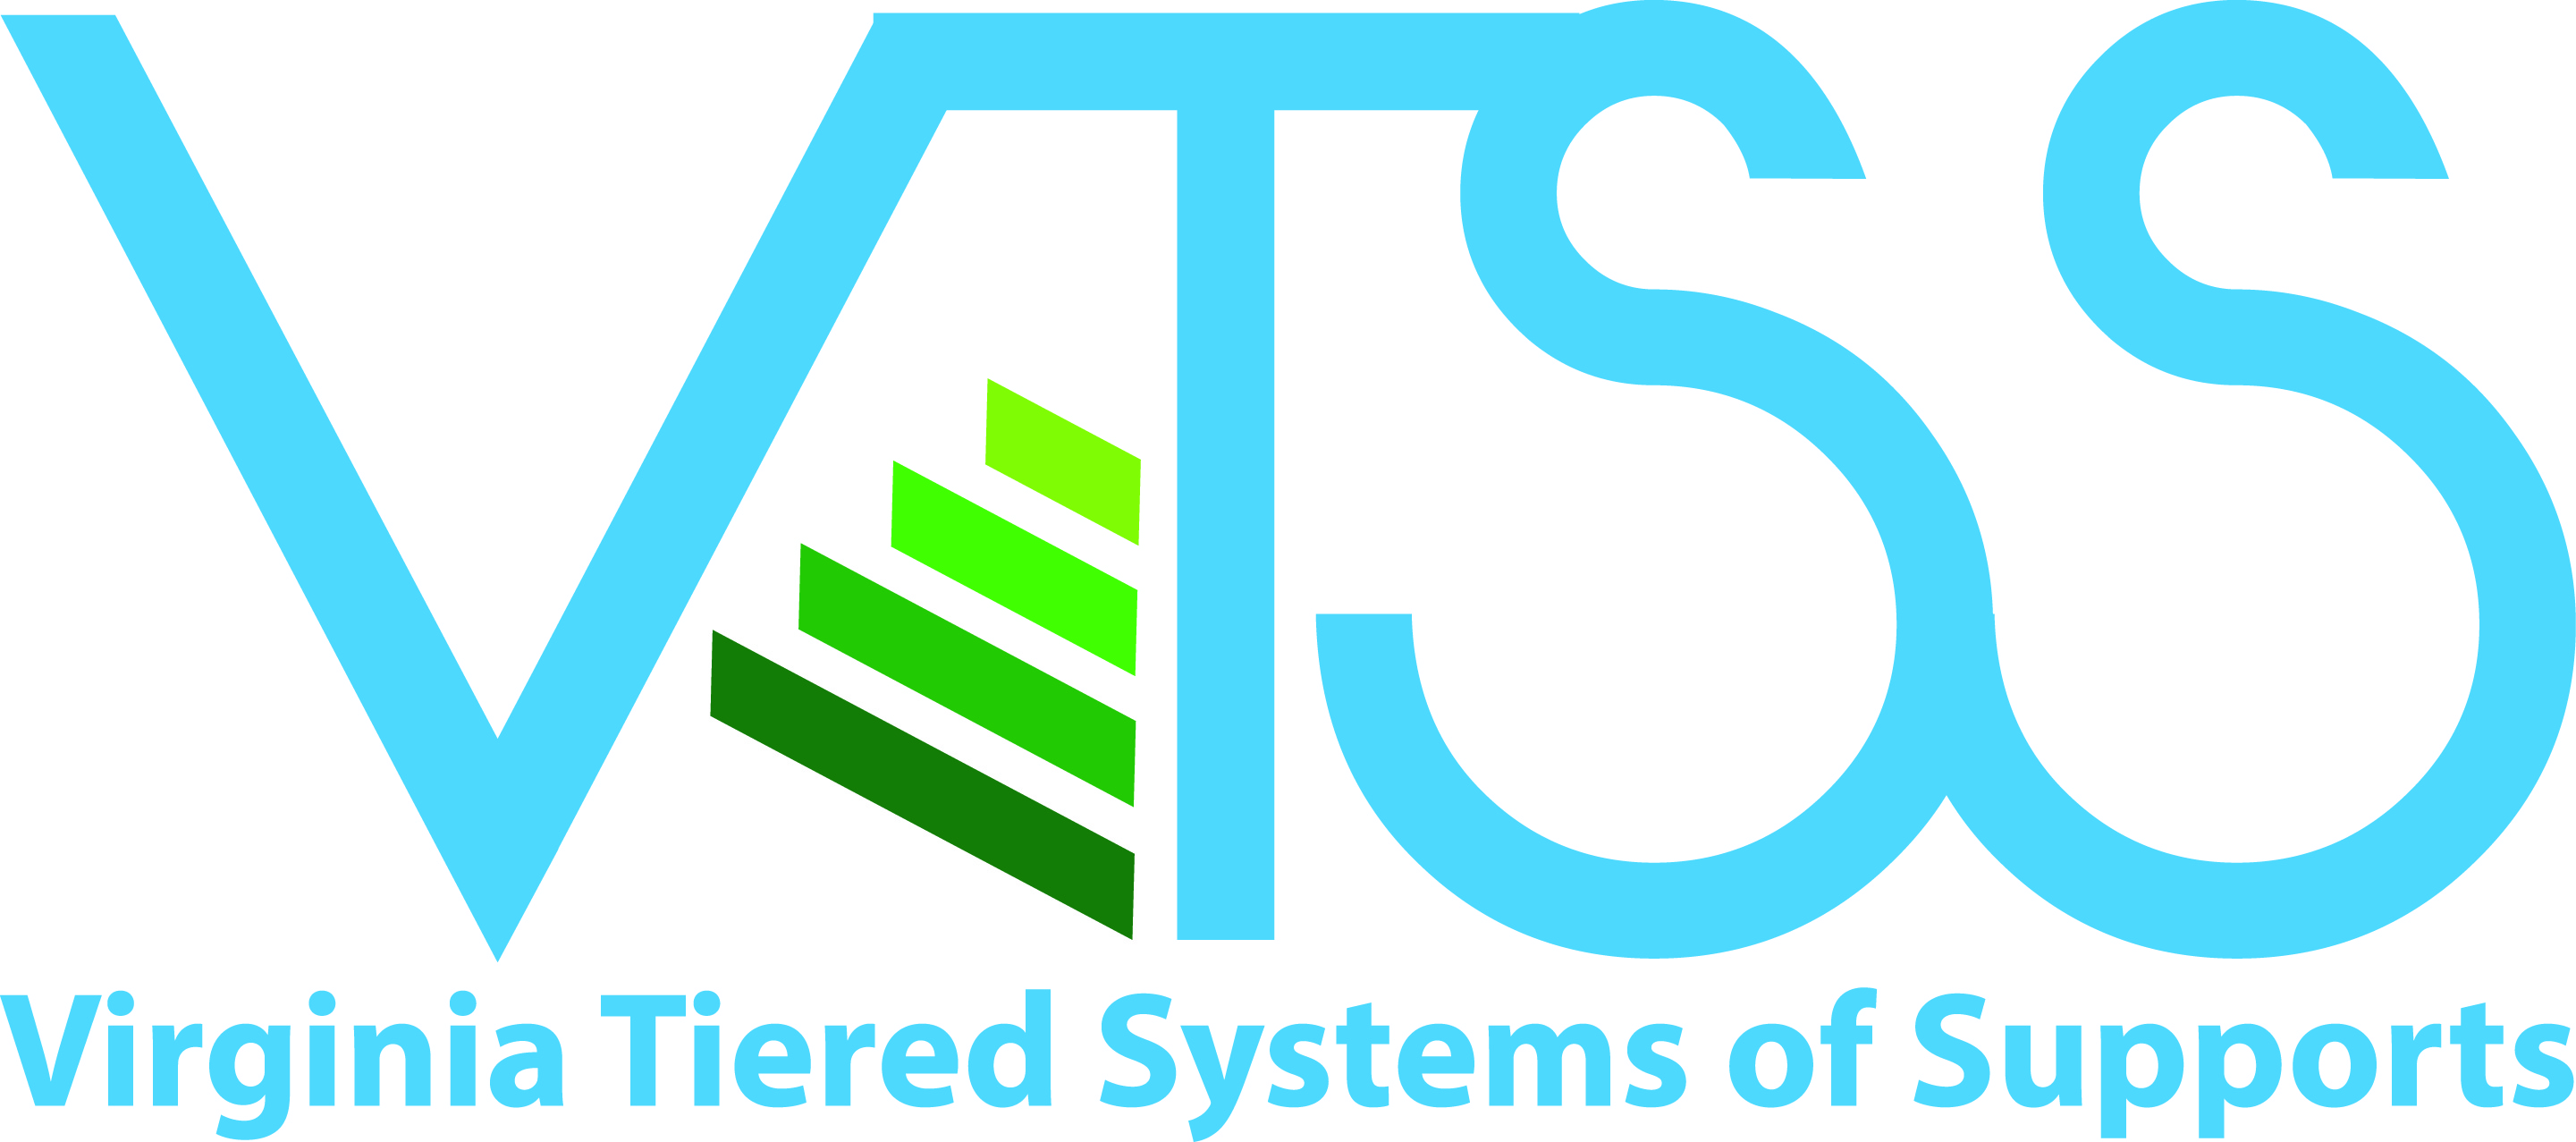 Virginia Tiered Systems of Support logo